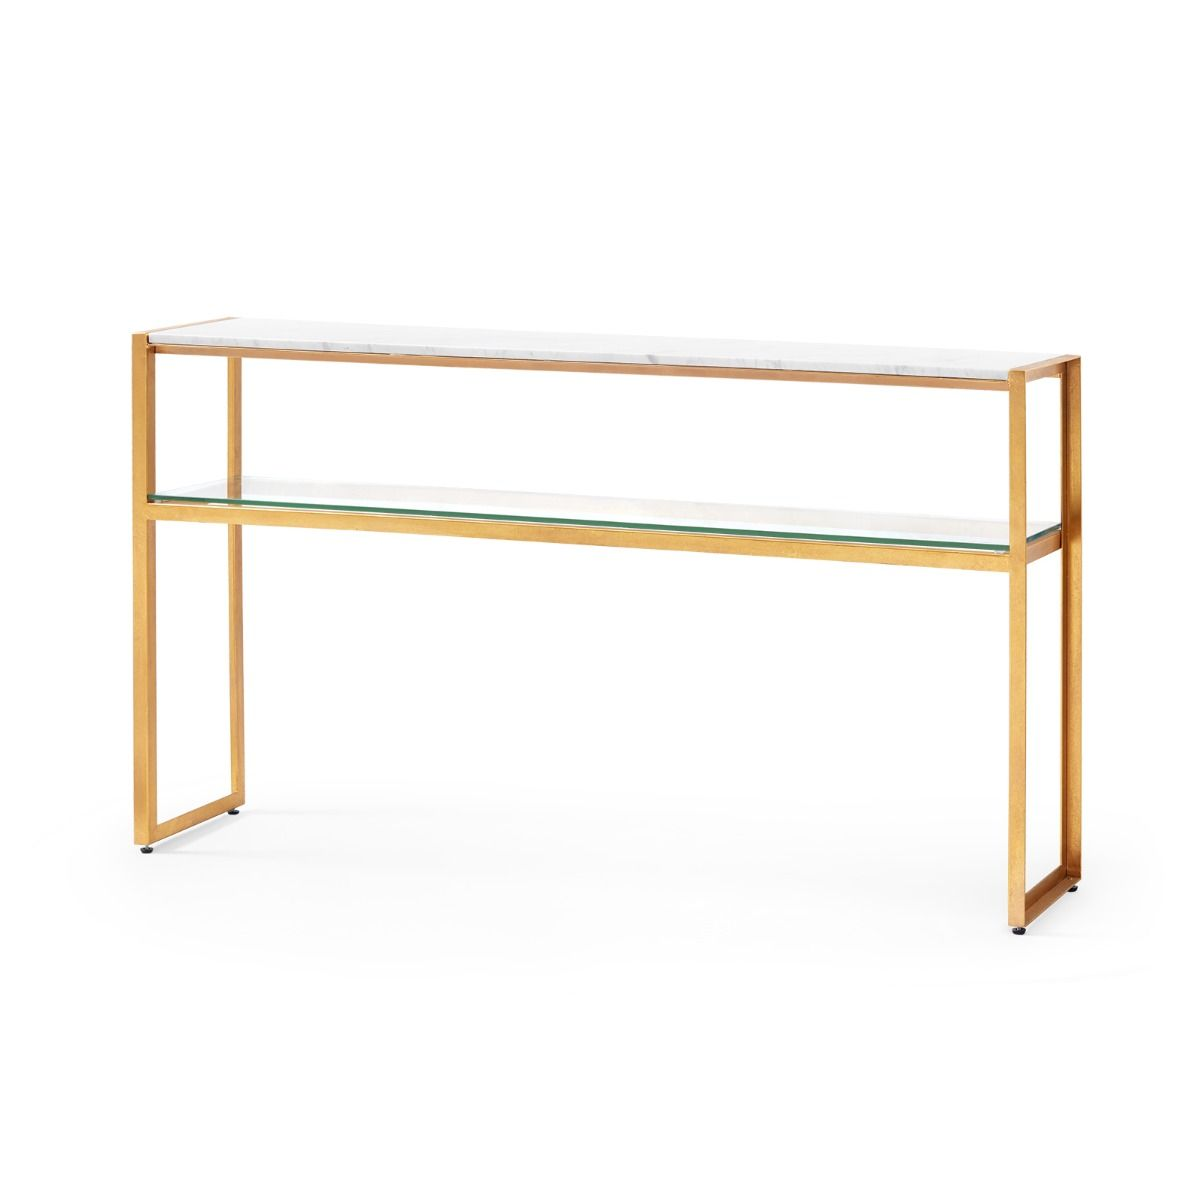 Bungalow 5 - ENDURA CONSOLE TABLE, WHITE